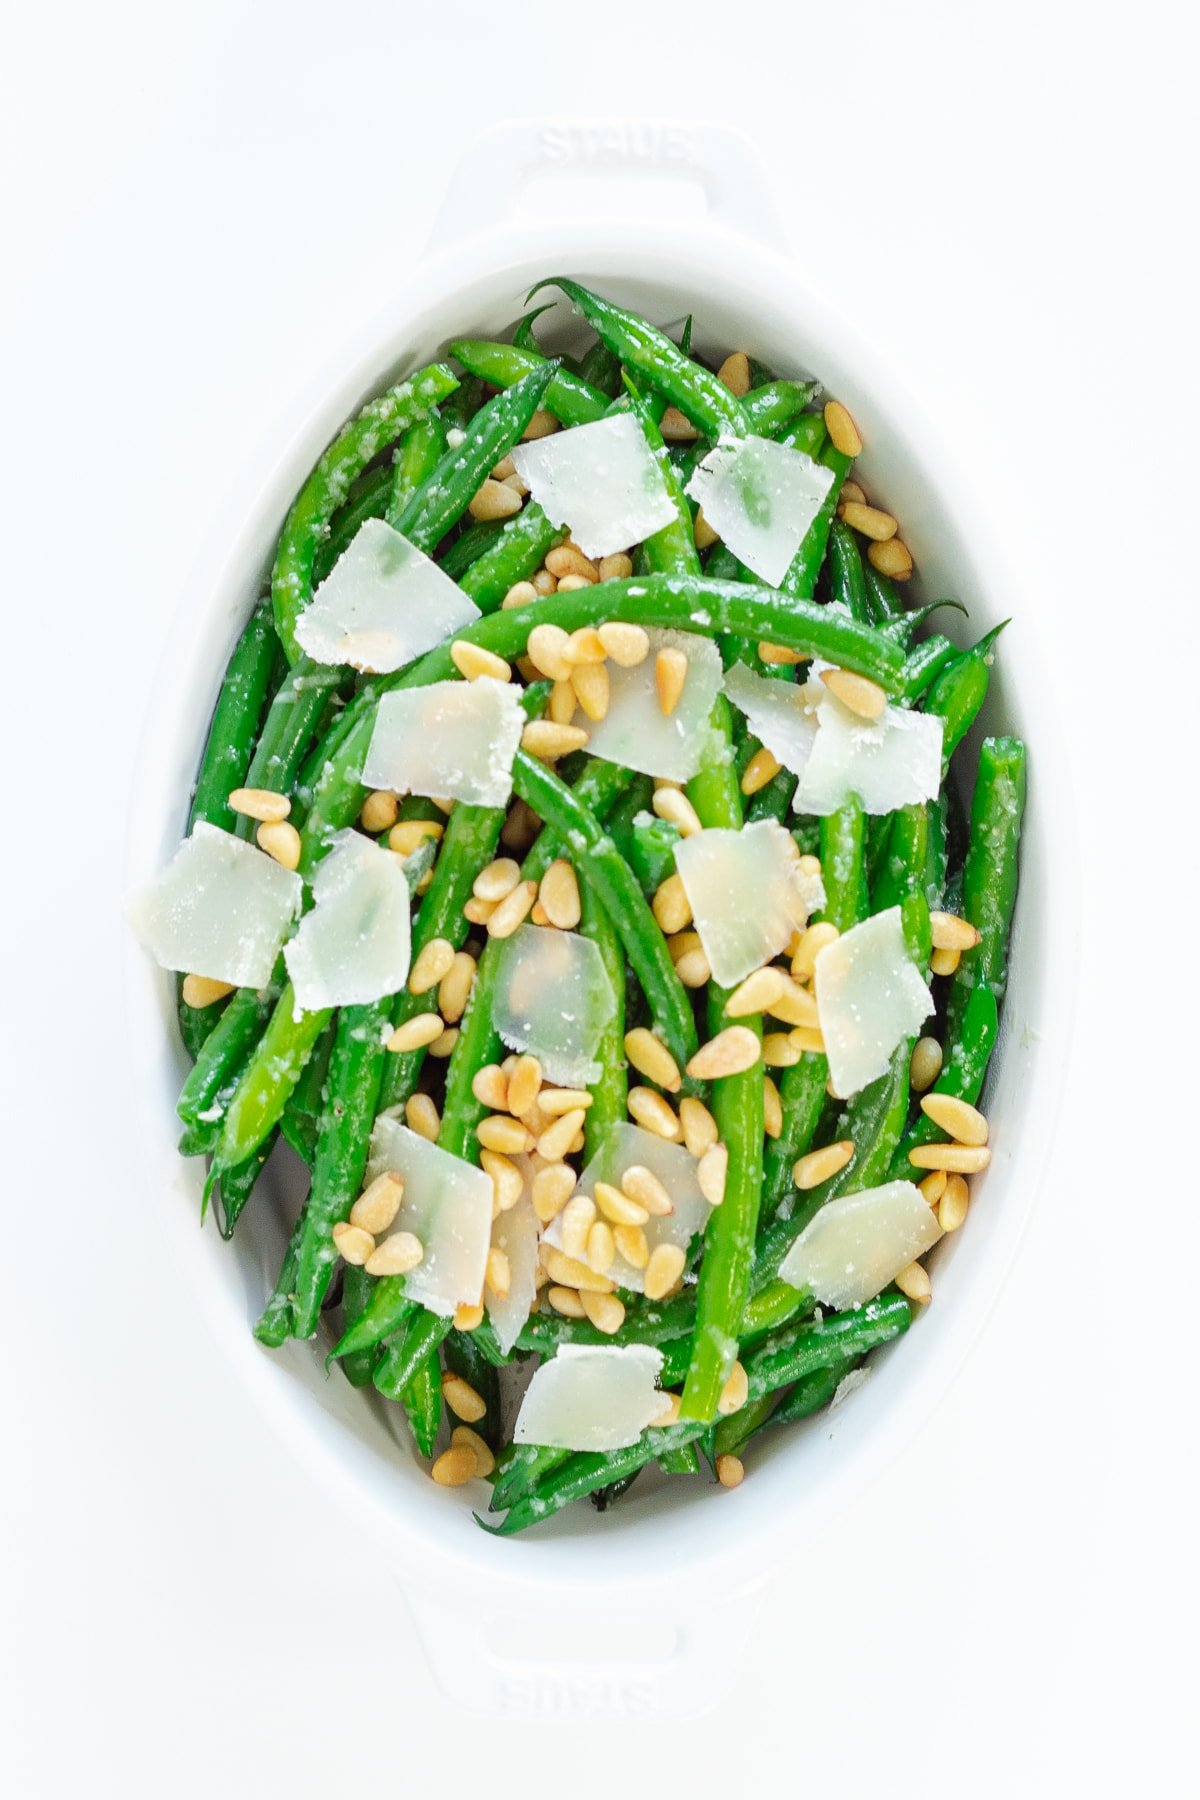 Sauteed garlic butter green beans in a white serving dish with parmesan shavings and pine nuts on top.